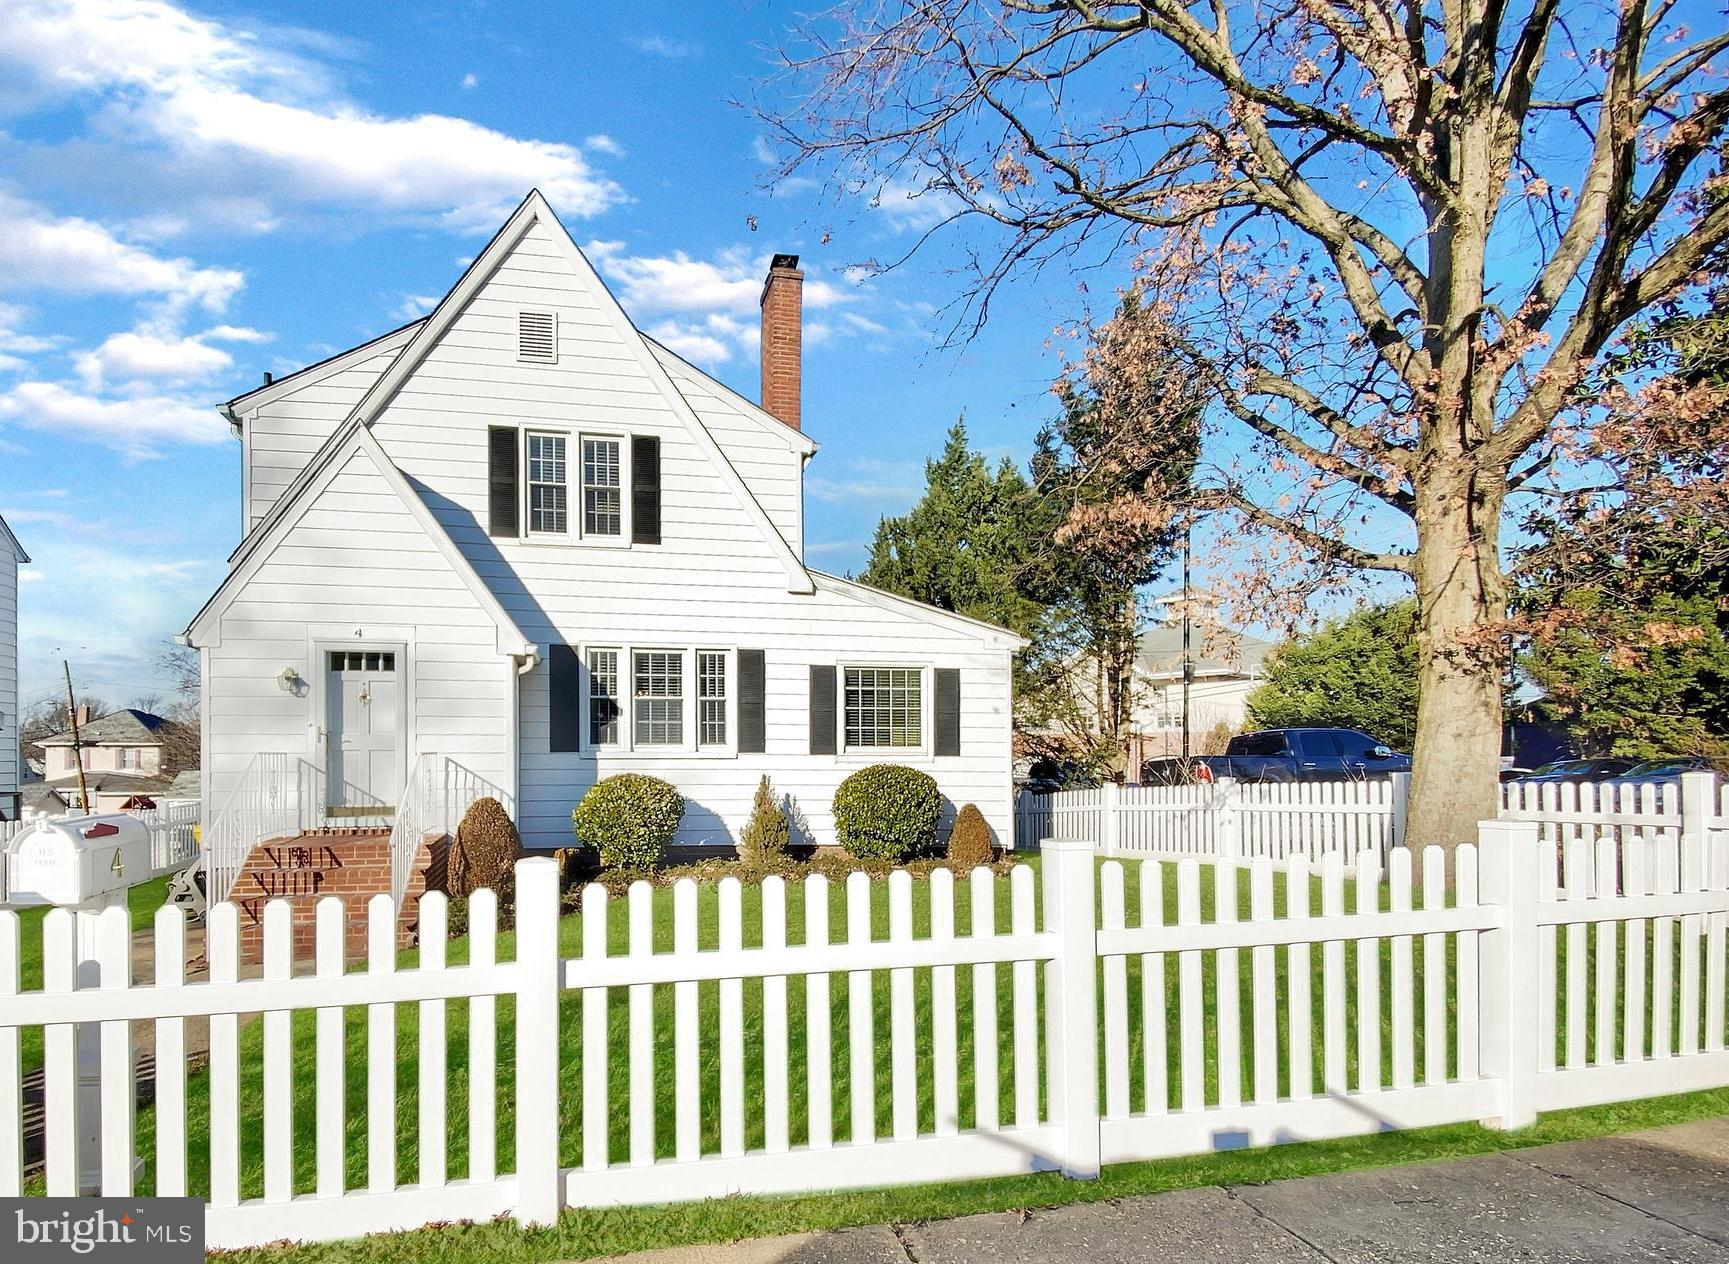 This well-maintained spacious cape cod features a fireplace, formal dining room, large great room addition, sunroom, built-in bar, new fence (2020), level parking pad for four vehicles, lower level addition with walk-out entrance (perfect for a home office, home gym/yoga studio, or playroom). This won't last long! See it today!